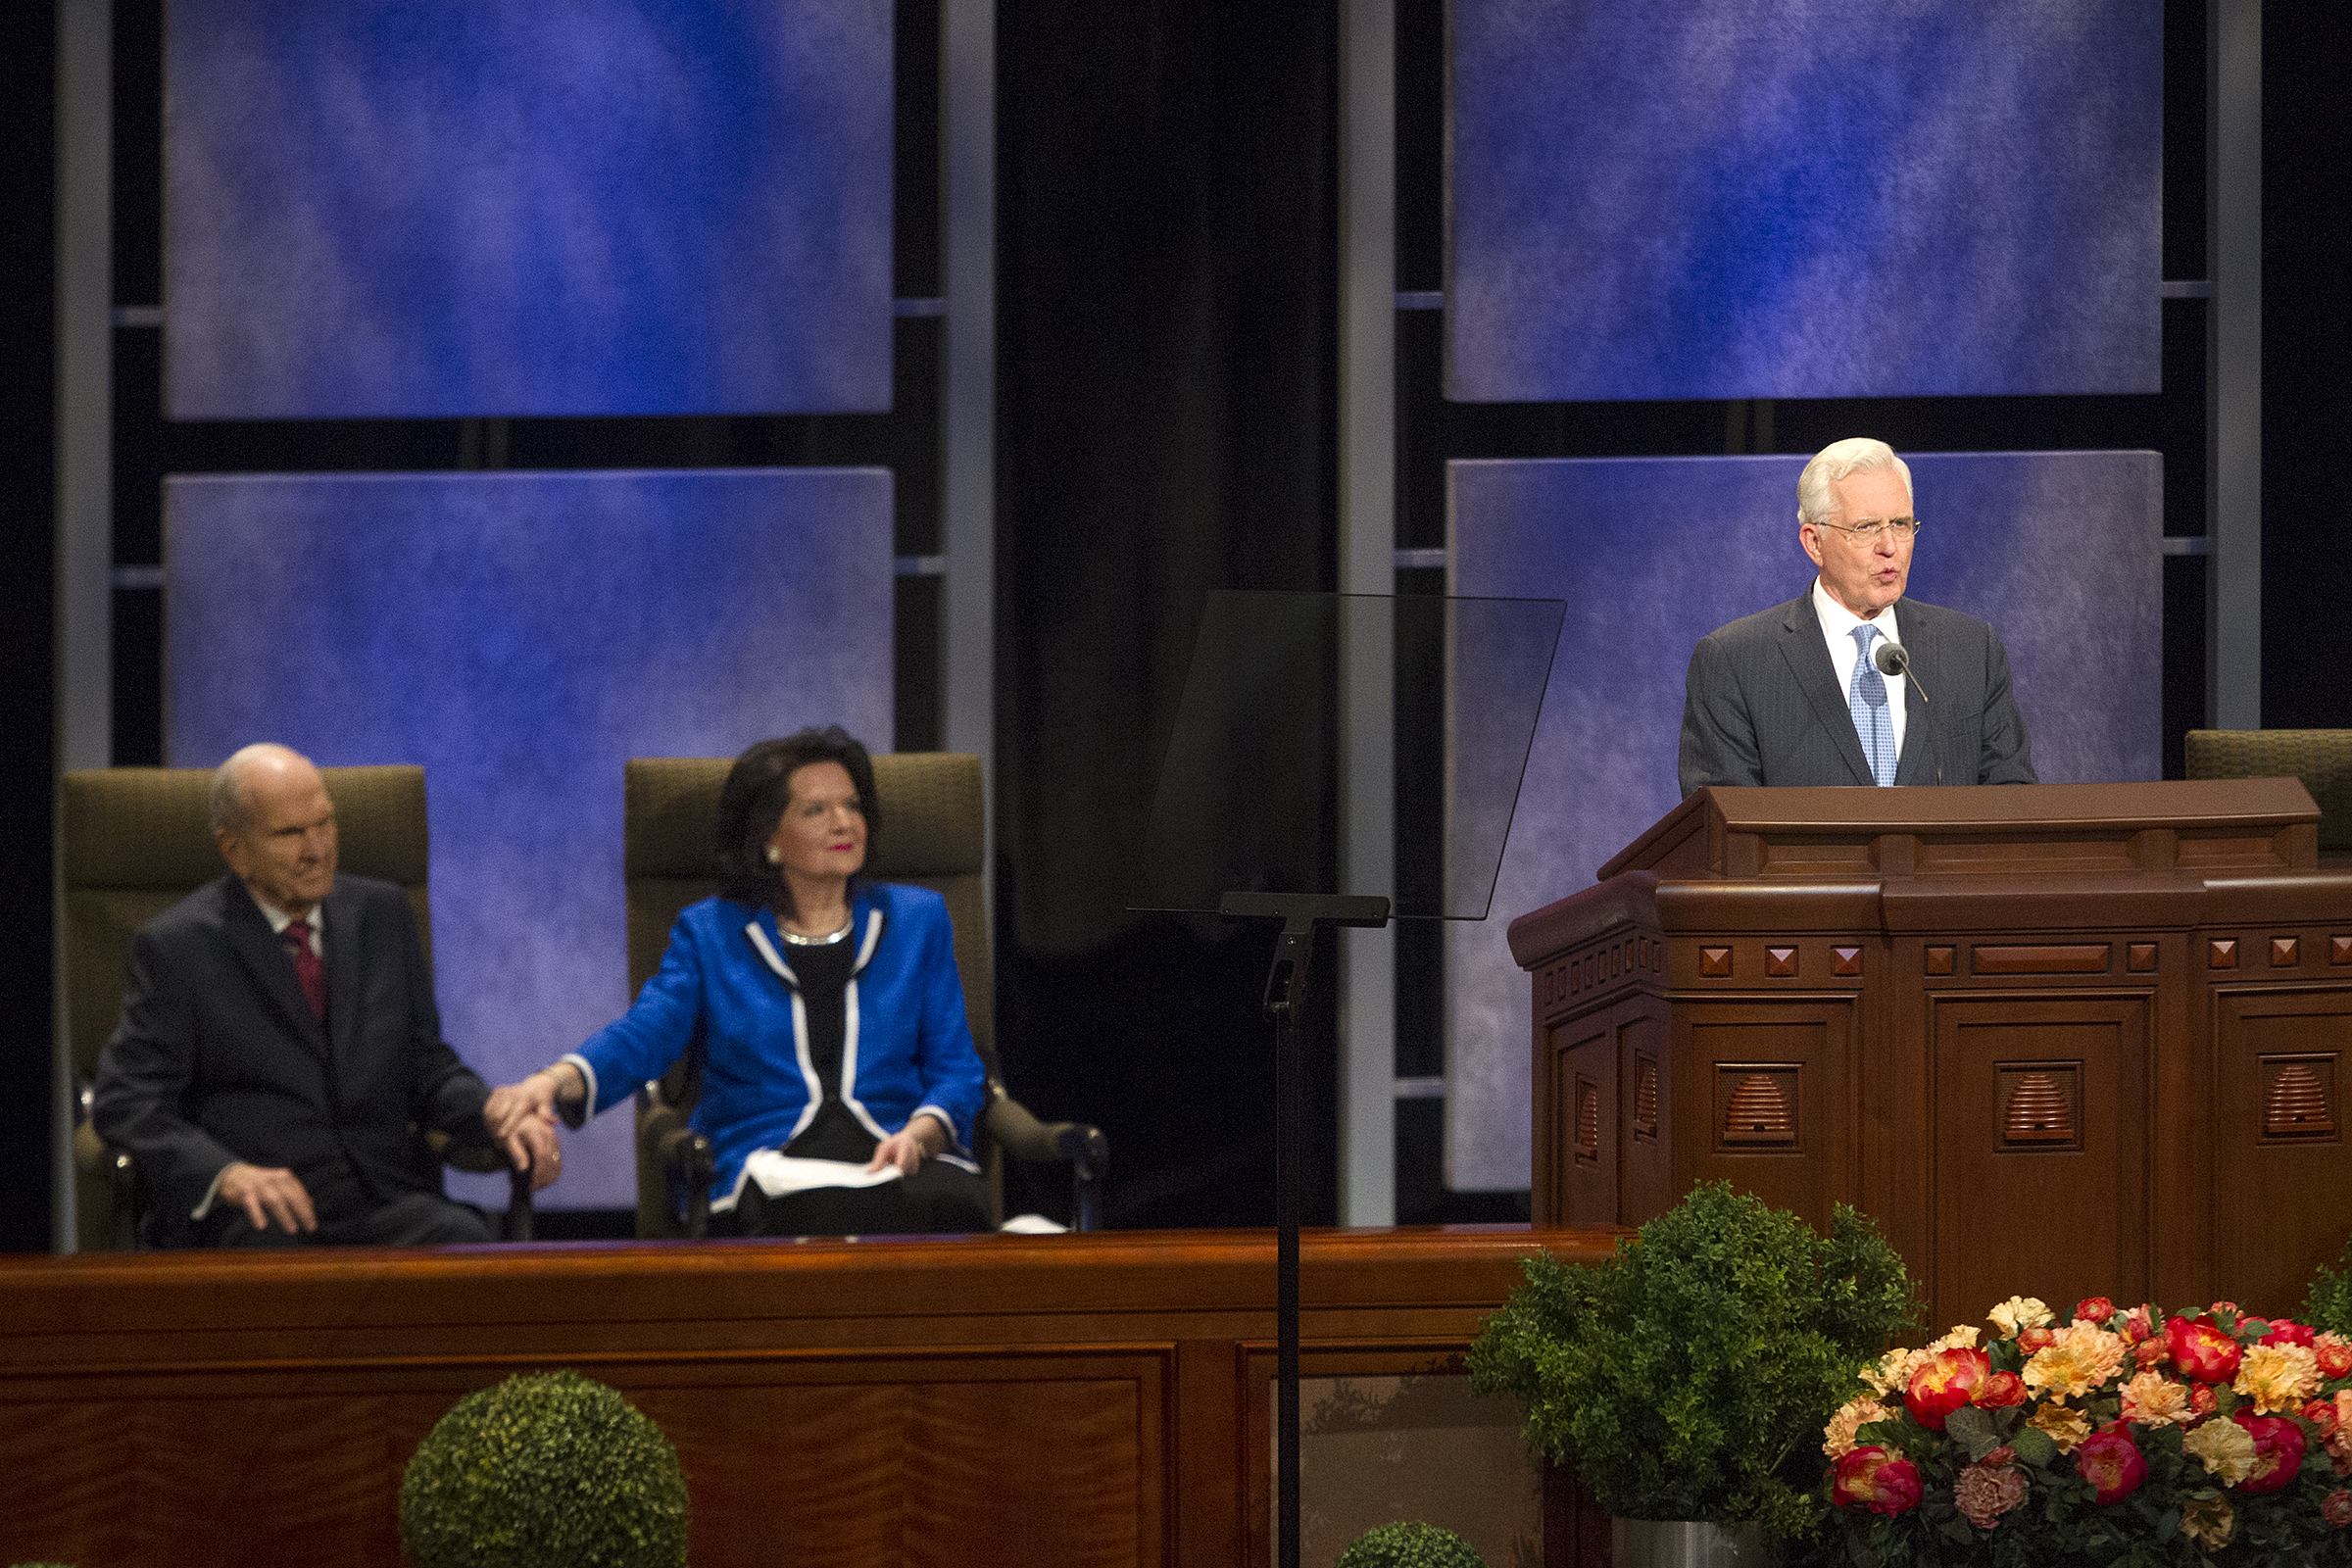 Elder D. Todd Christofferson of the Quorum of the Twelve Apostles of The Church of Jesus Christ of Latter-day Saints speaks as President Russell M. Nelson sits with his wife, Sister Wendy Nelson, during the Worldwide Youth Devotional at the Conference Center in Salt Lake City on Sunday, June 3, 2018.